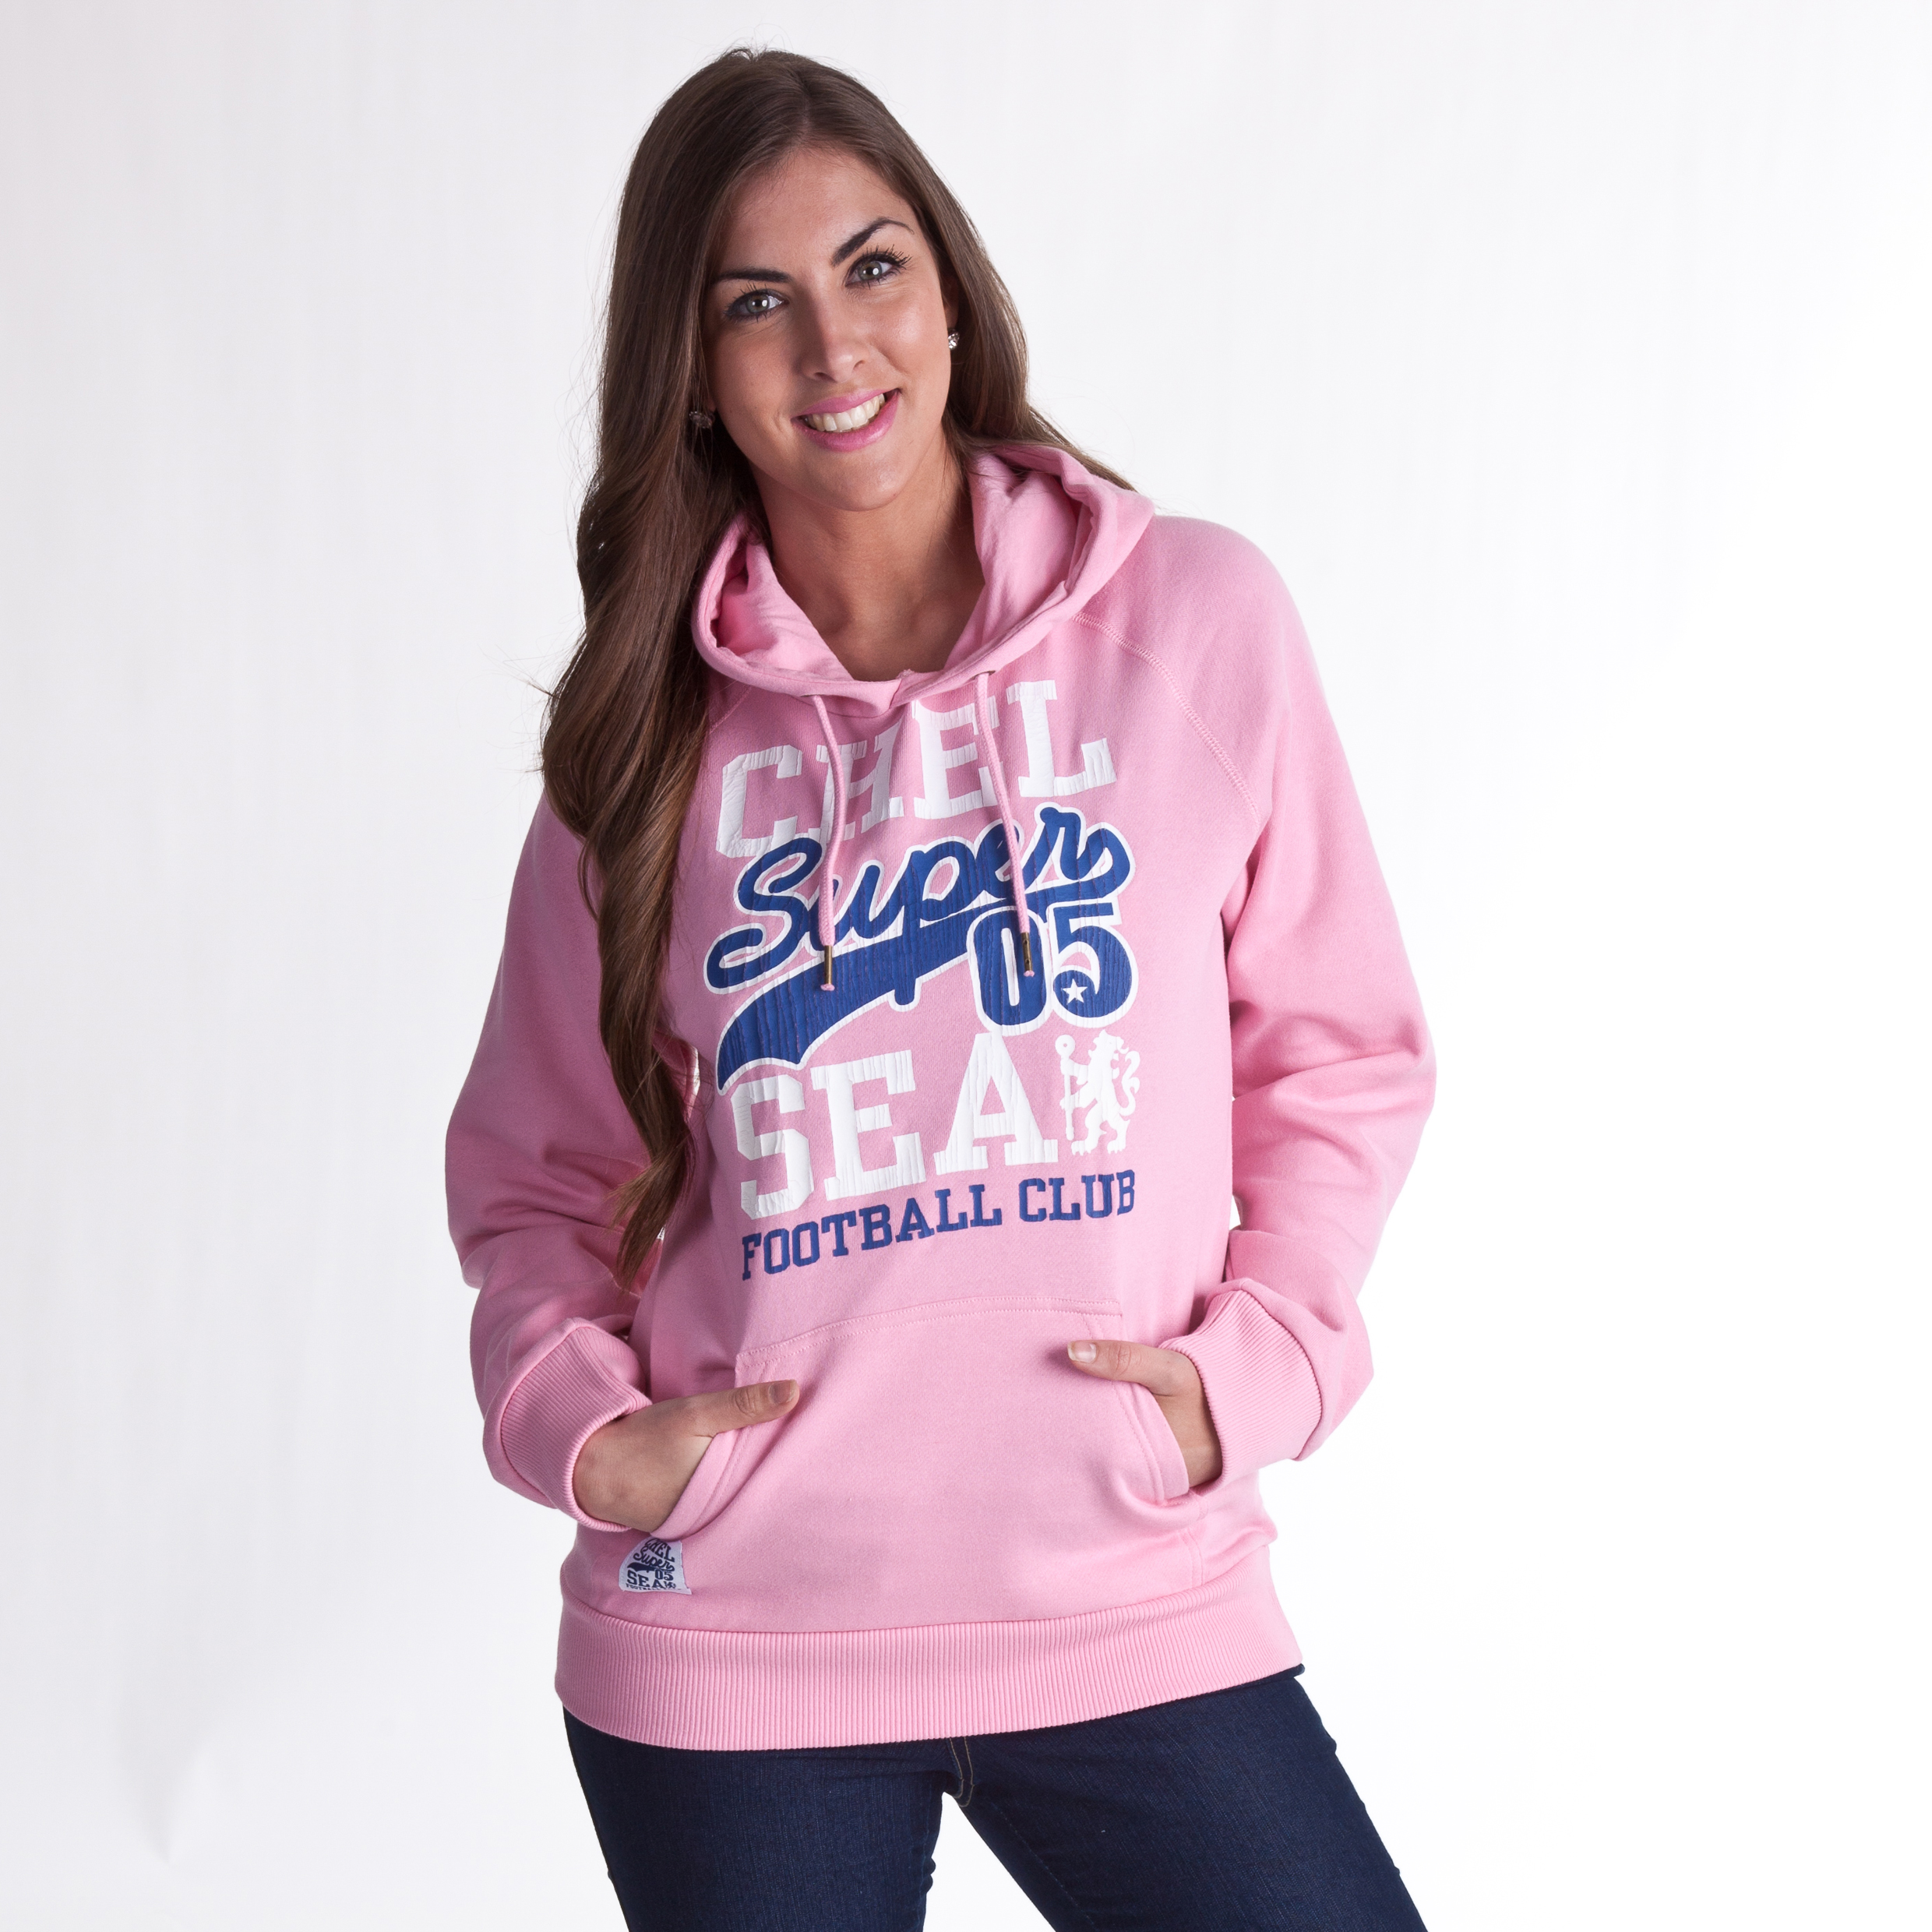 Chelsea Super 05 Graphic Hoody - Sherbet Pink - Womens